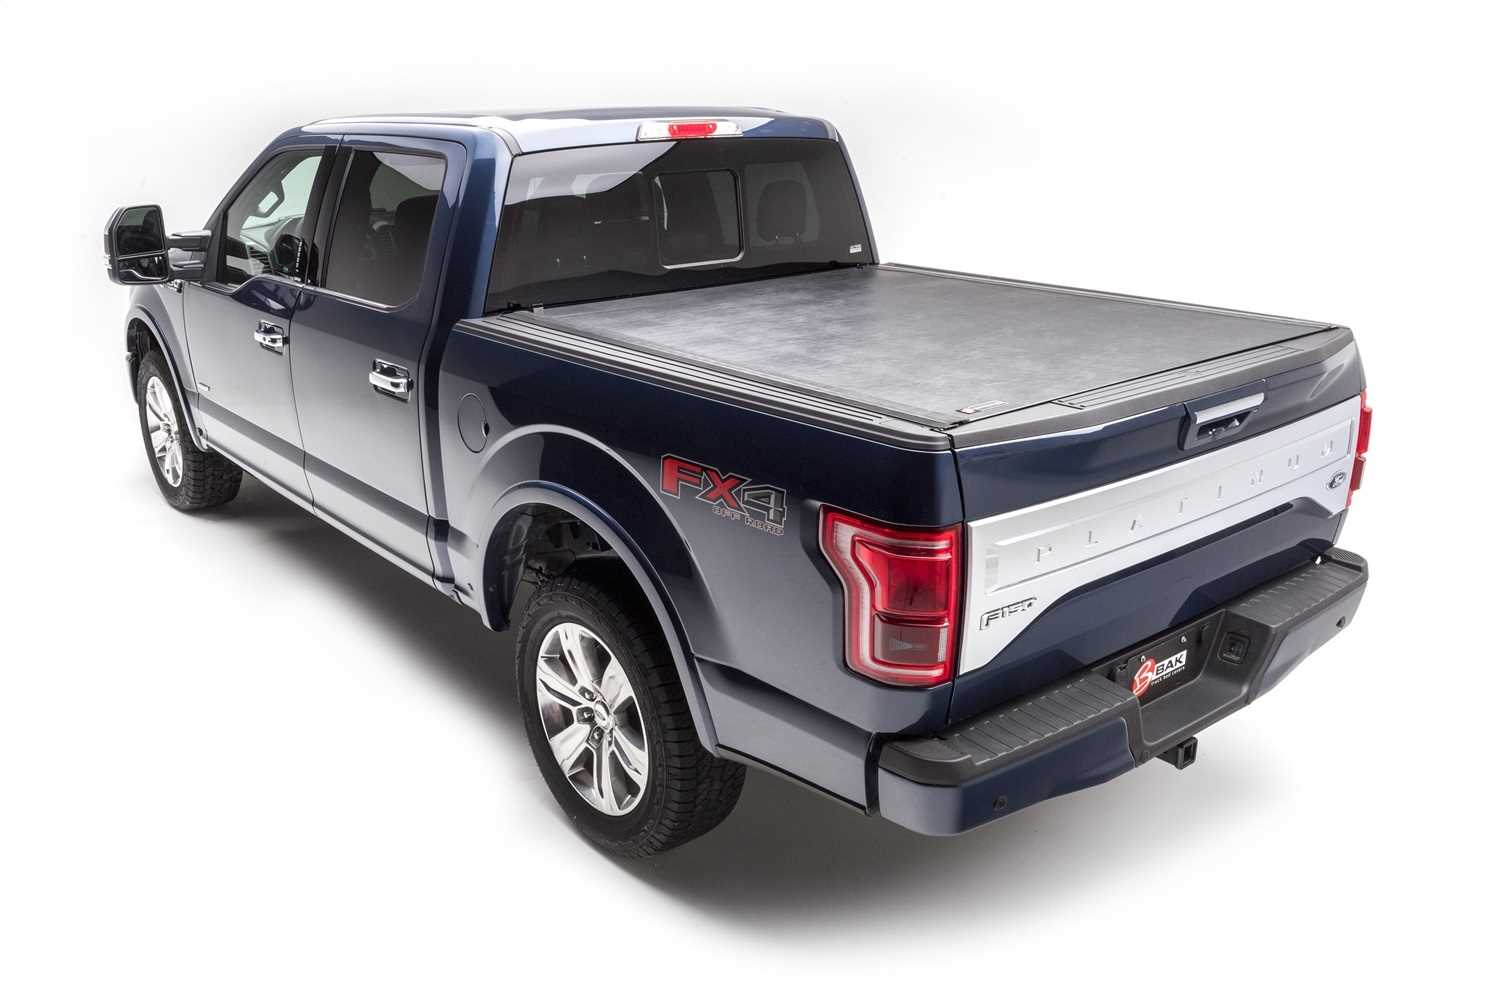 39310 Bak Industries Revolver X2 Hard Rolling Truck Bed Cover